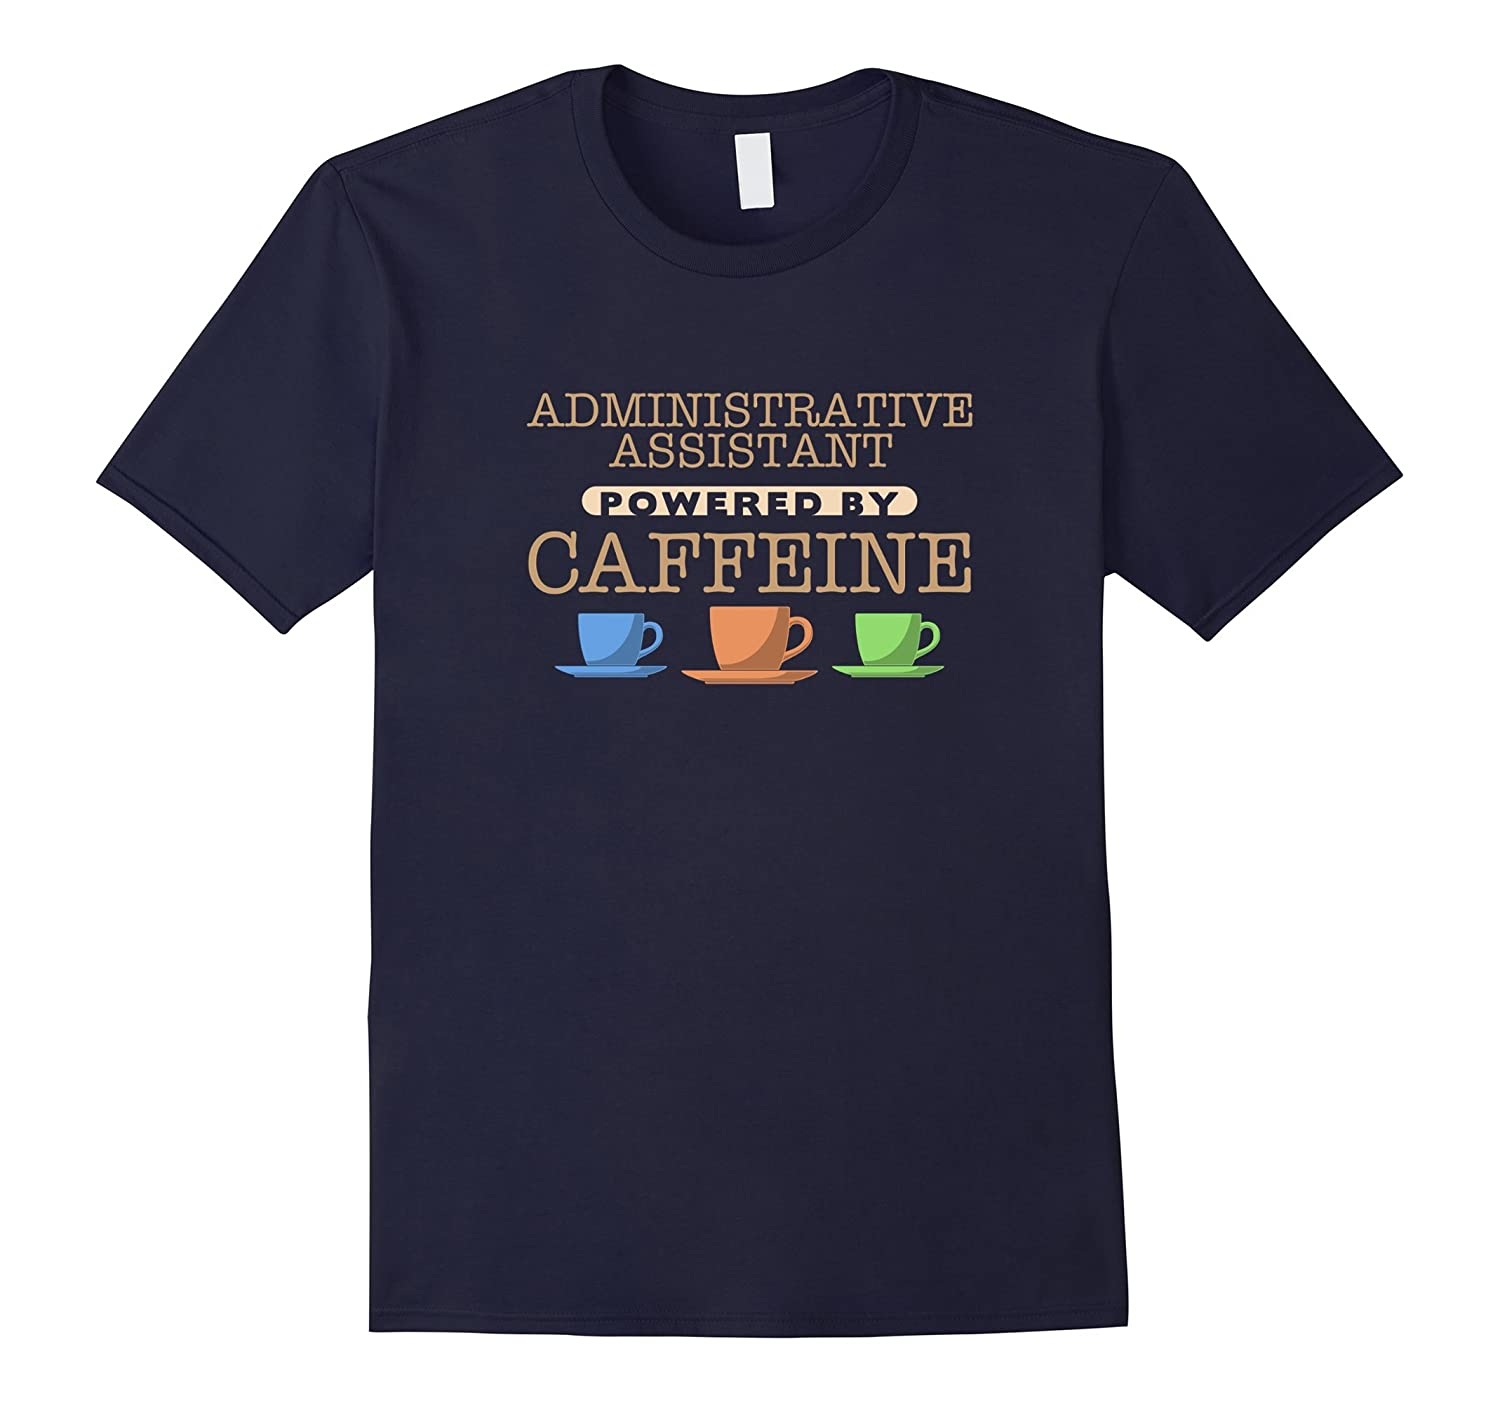 Administrative Assistant Powered by Caffeine T-Shirt-TD